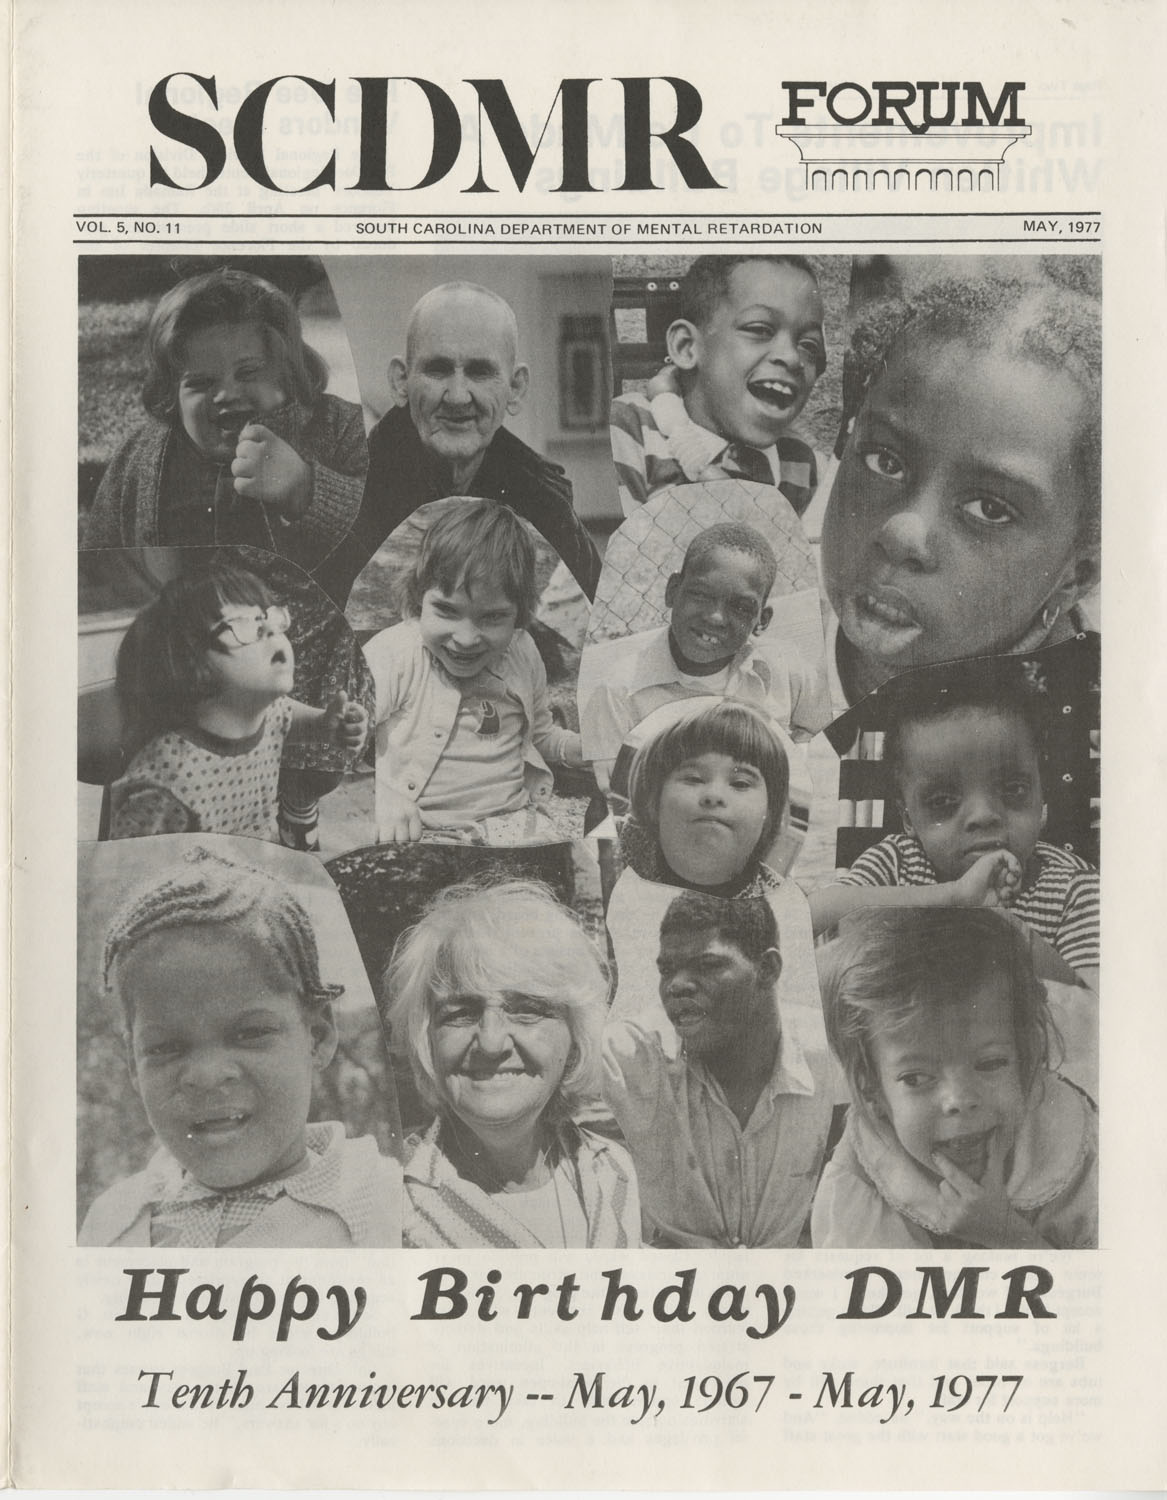 SCDMR Forum, South Carolina Department of Mental Retardation, May 1977